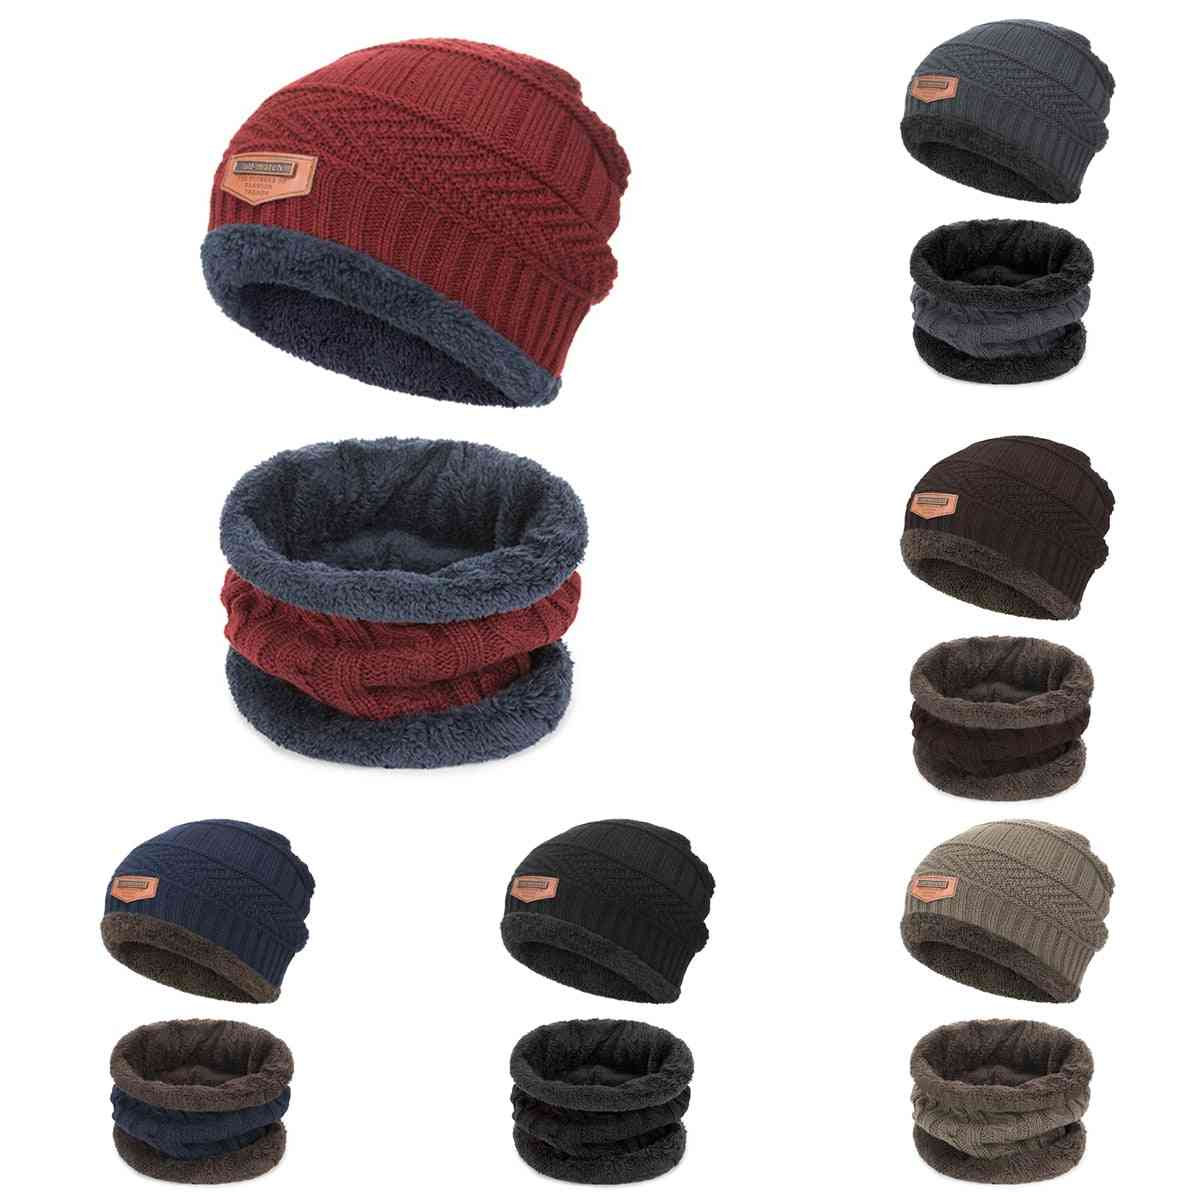 Winter Fashion Beanies Knitted Collar, Scarf, Hat For